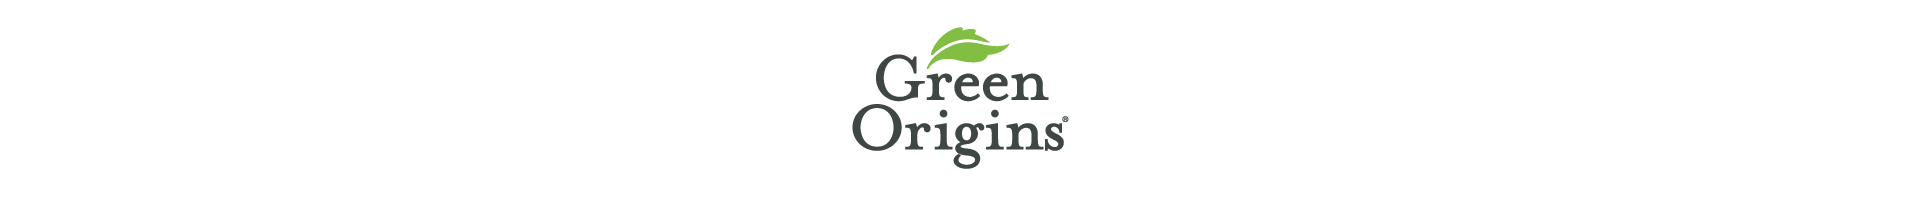 Greenorigins